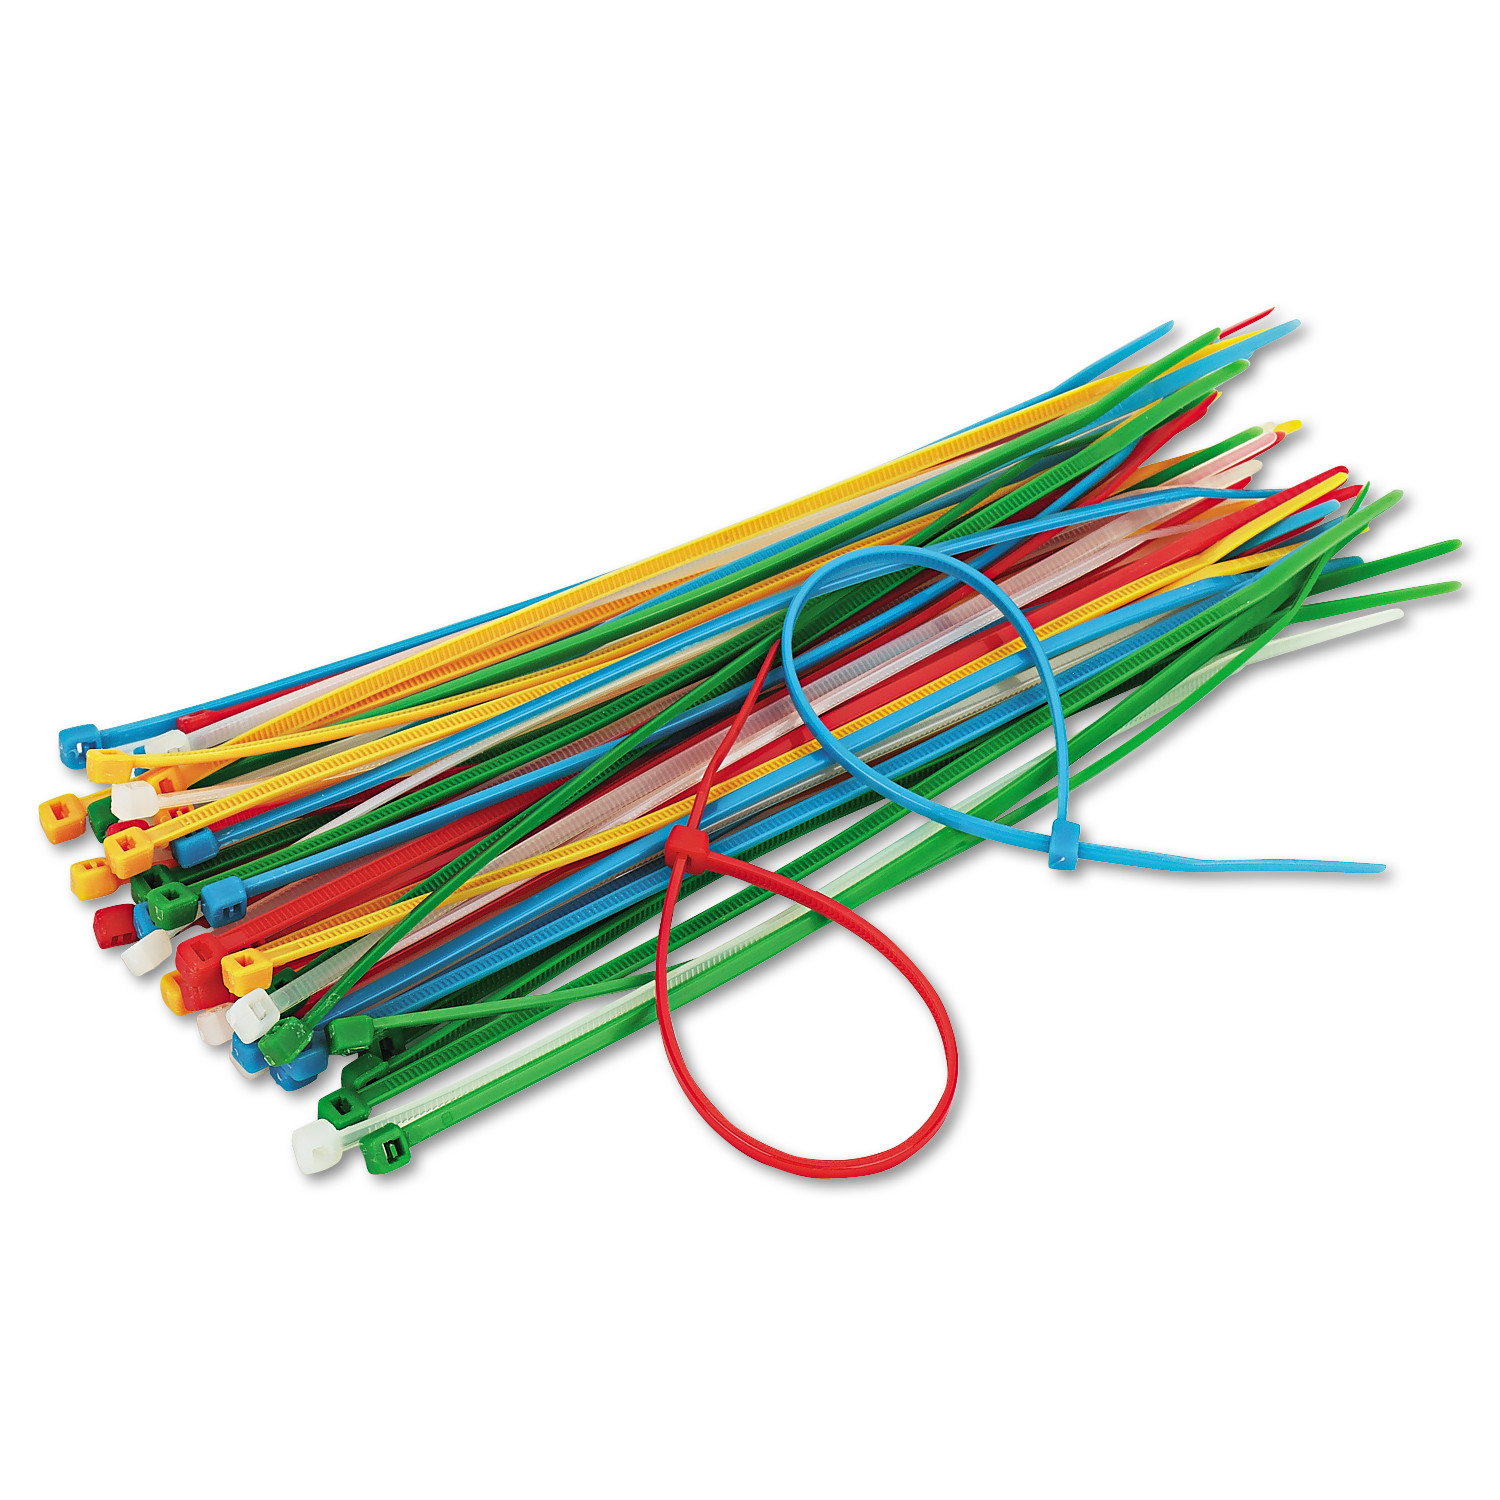 "Innovera Cable Ties, 6-3/8"" Length, Assorted Colors, 50 Ties/Pack"